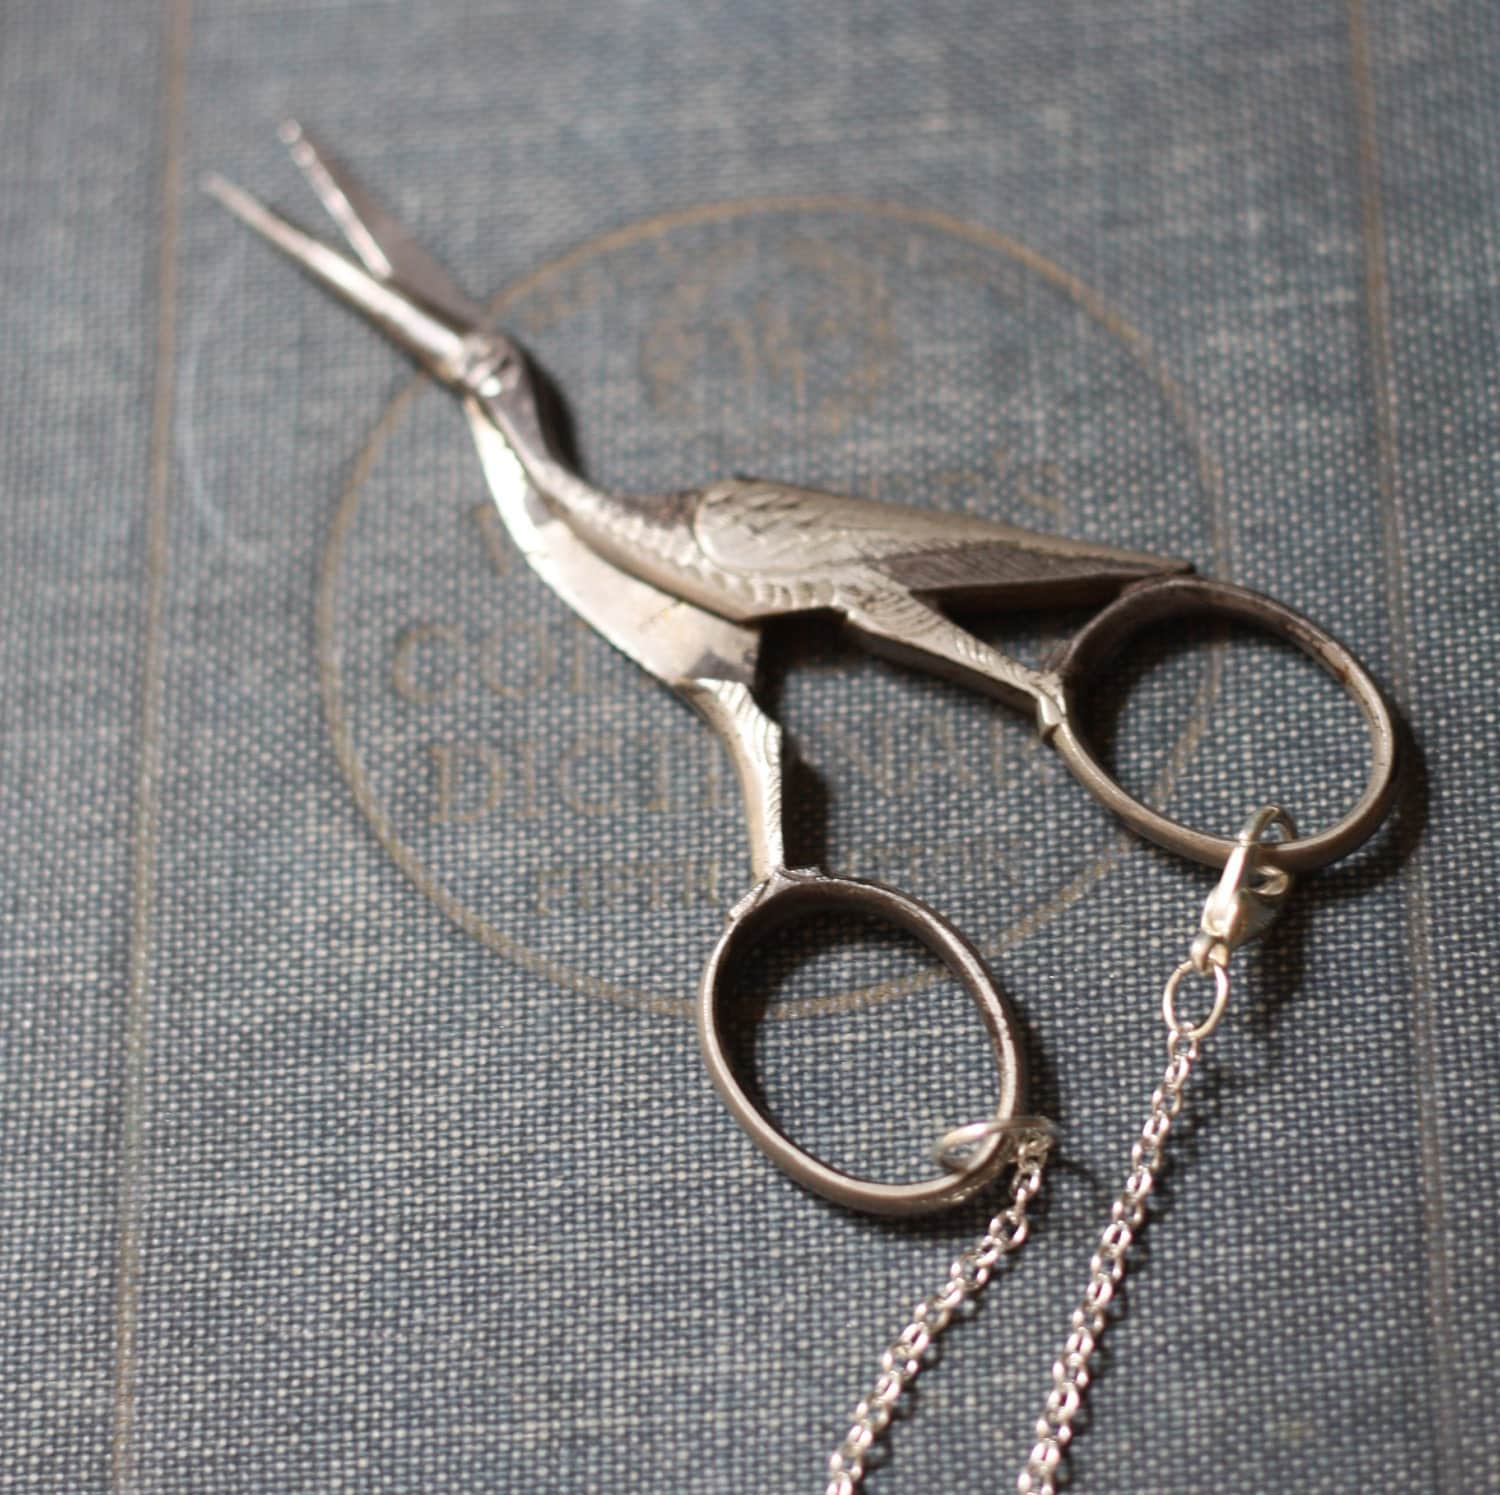 Scissors Necklace Antique Pictures To Pin On Pinterest